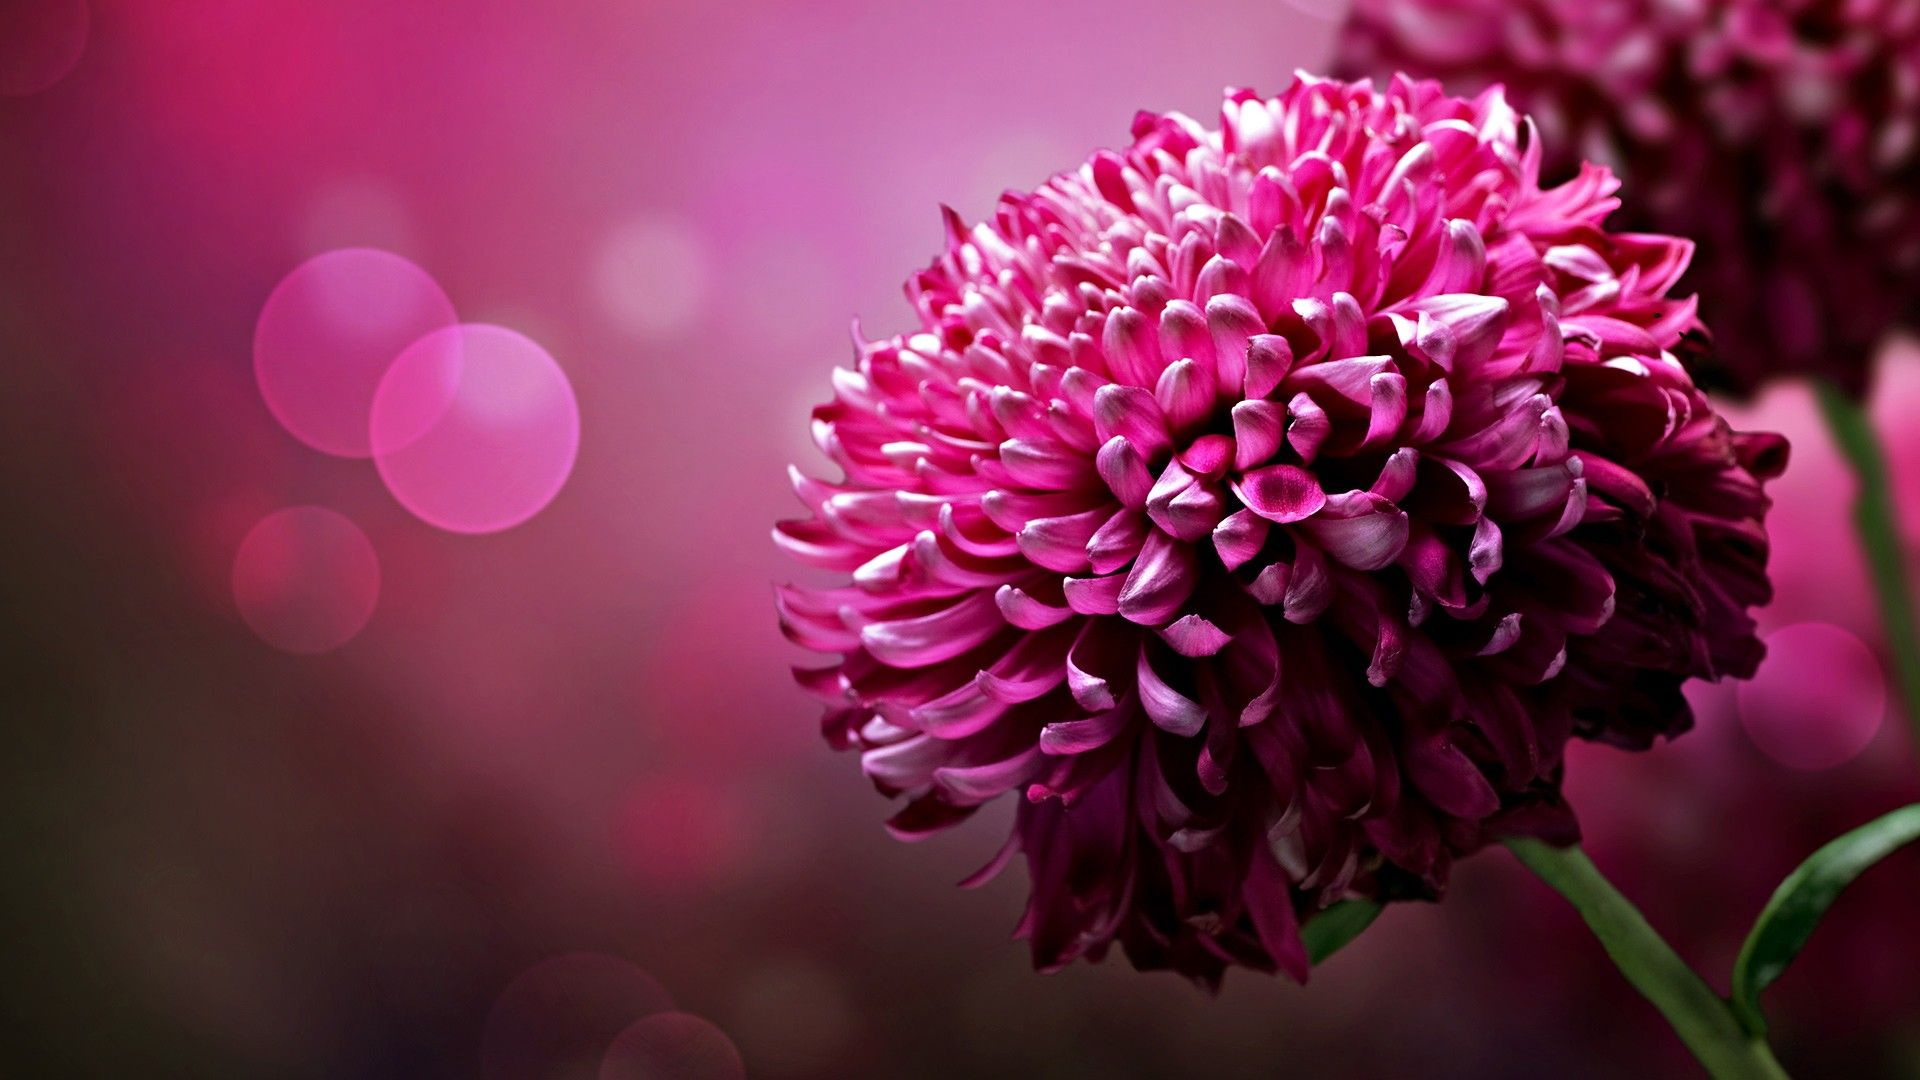 images for cute 3d hd wallpapers flowers